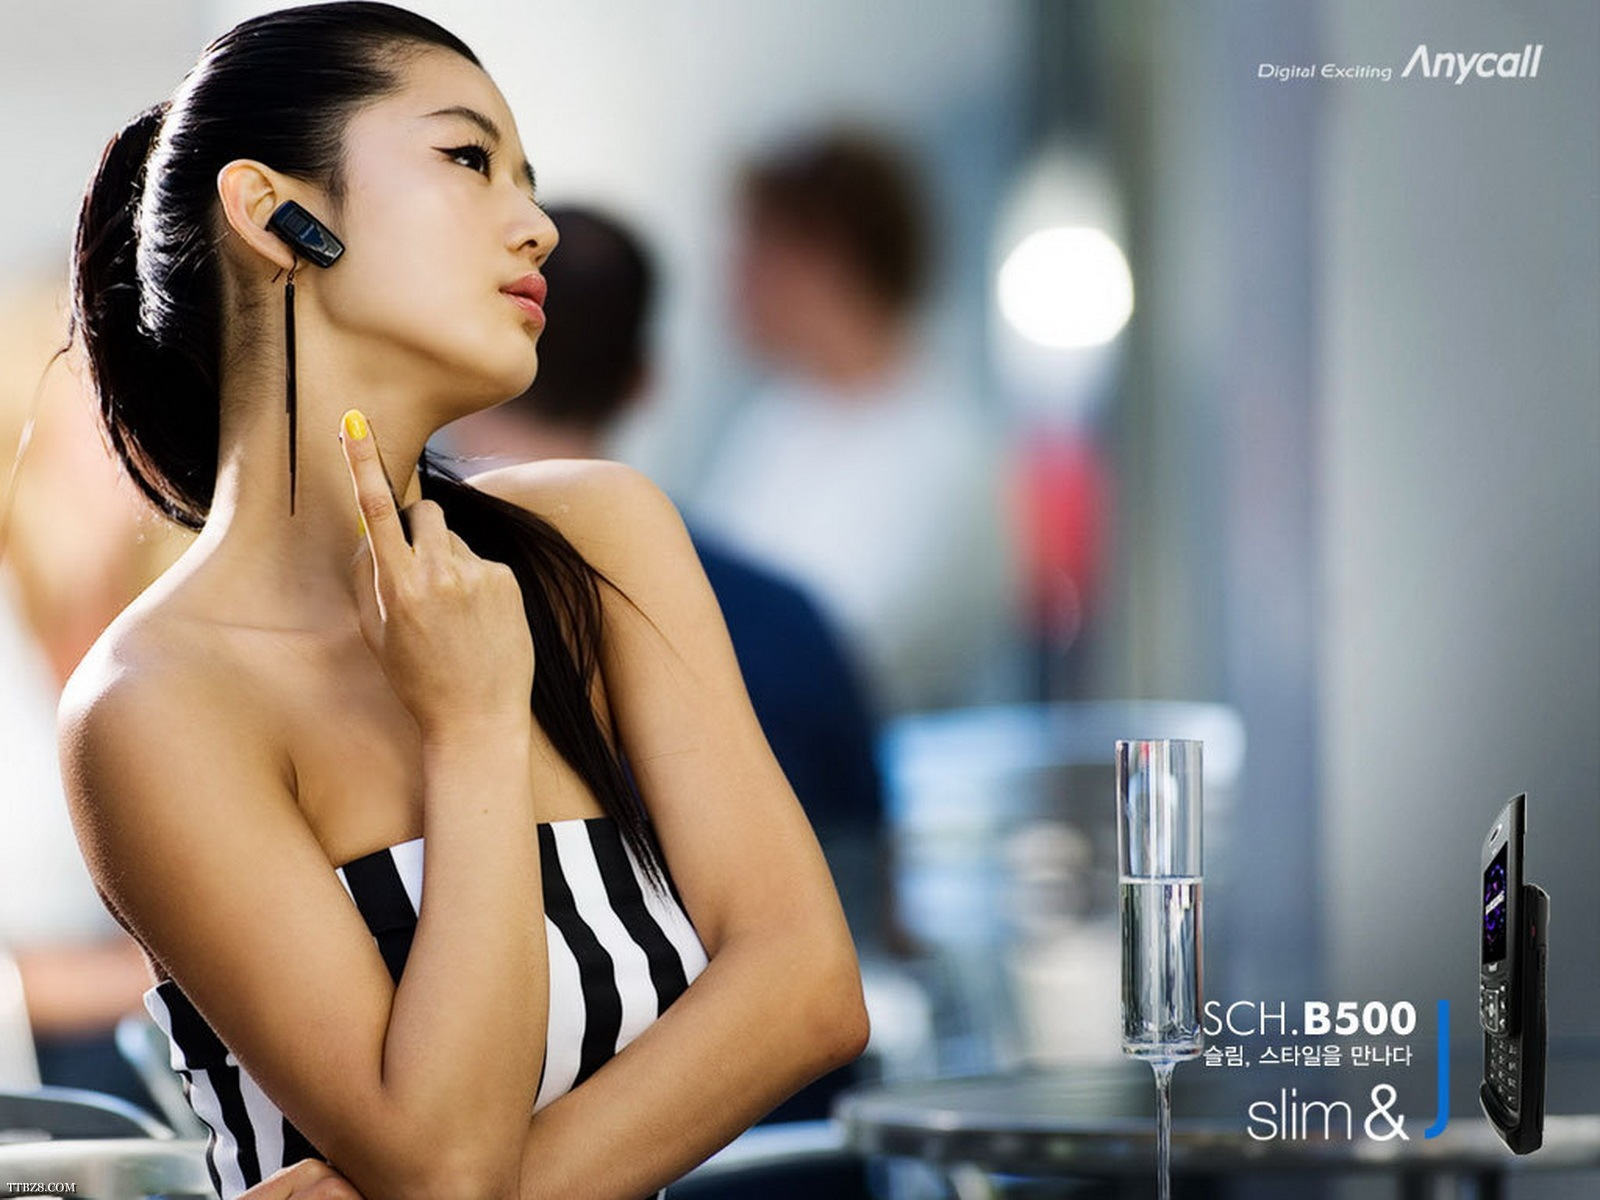 Jun Ji Hyun 252.58 Kb